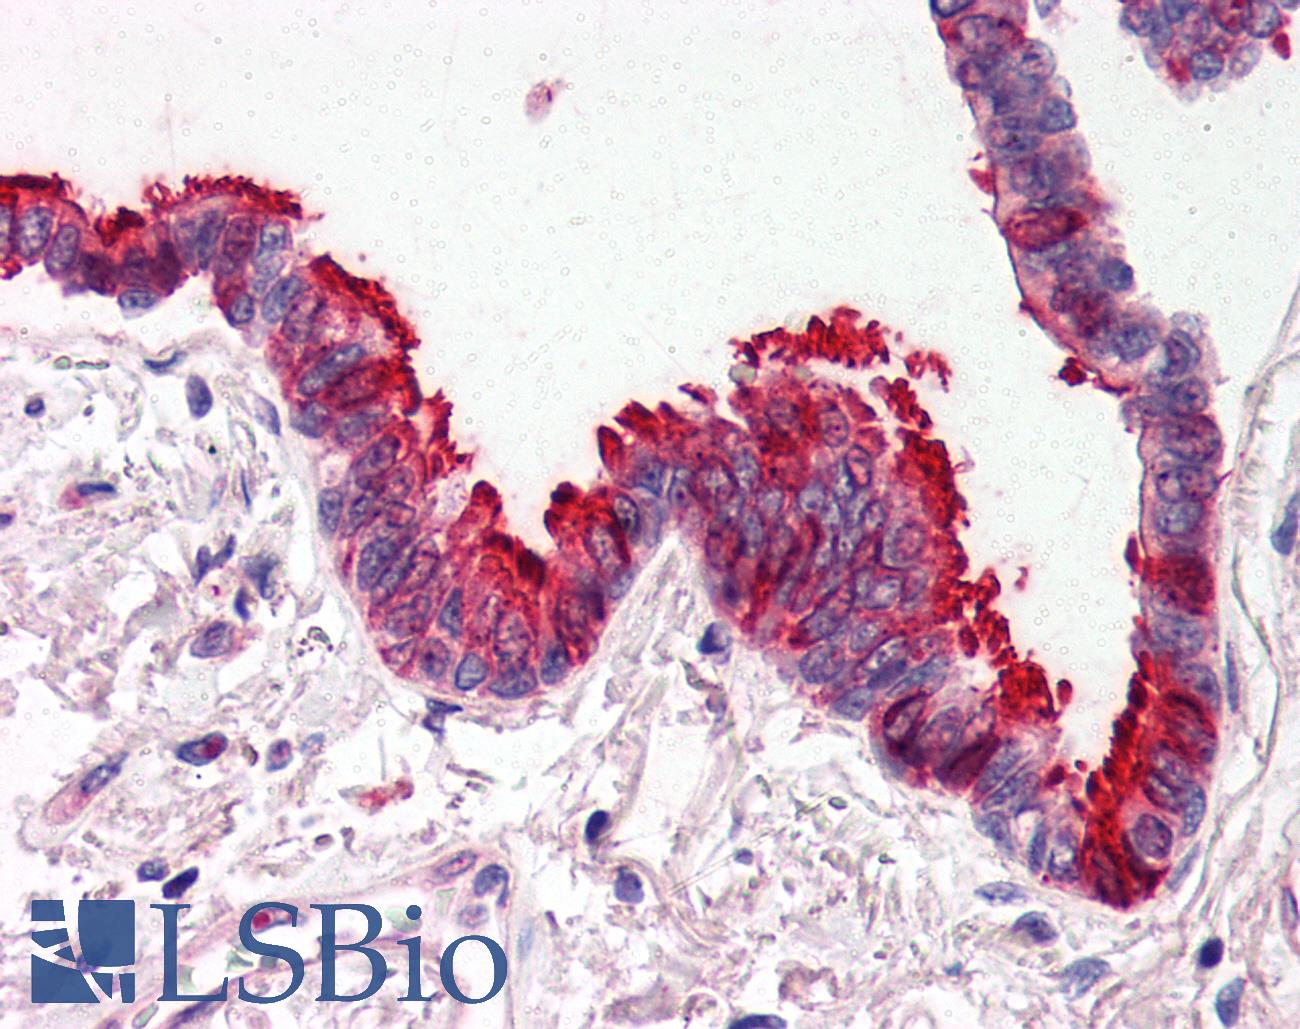 SKIL / SNO / SnoN Antibody - Anti-SKIL antibody IHC of human lung, respiratory epithelium. Immunohistochemistry of formalin-fixed, paraffin-embedded tissue after heat-induced antigen retrieval. Antibody concentration 5 ug/ml.